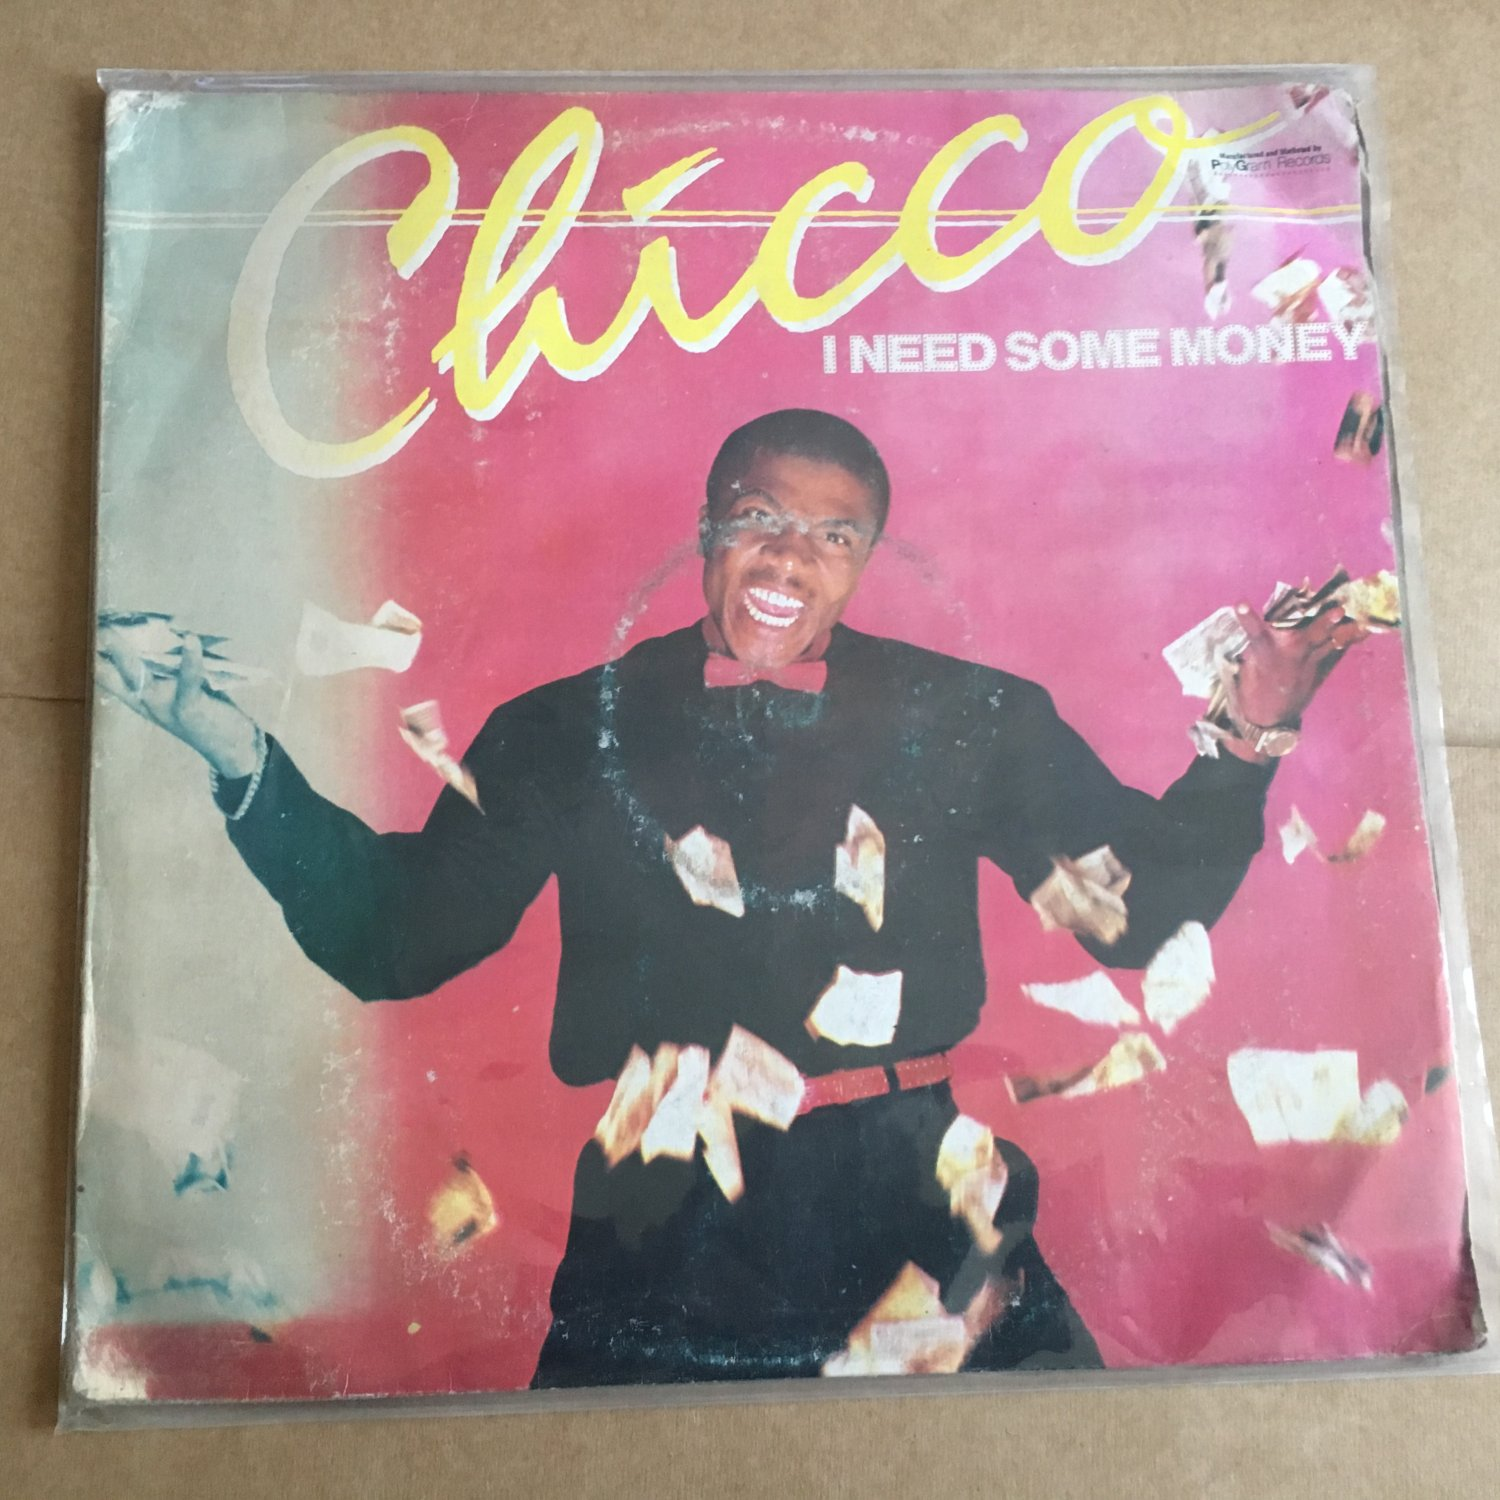 CHICCO LP i need money SOUTH AFRICA SYNTH FUNKY AFRO DIGITAL mp3 LISTEN